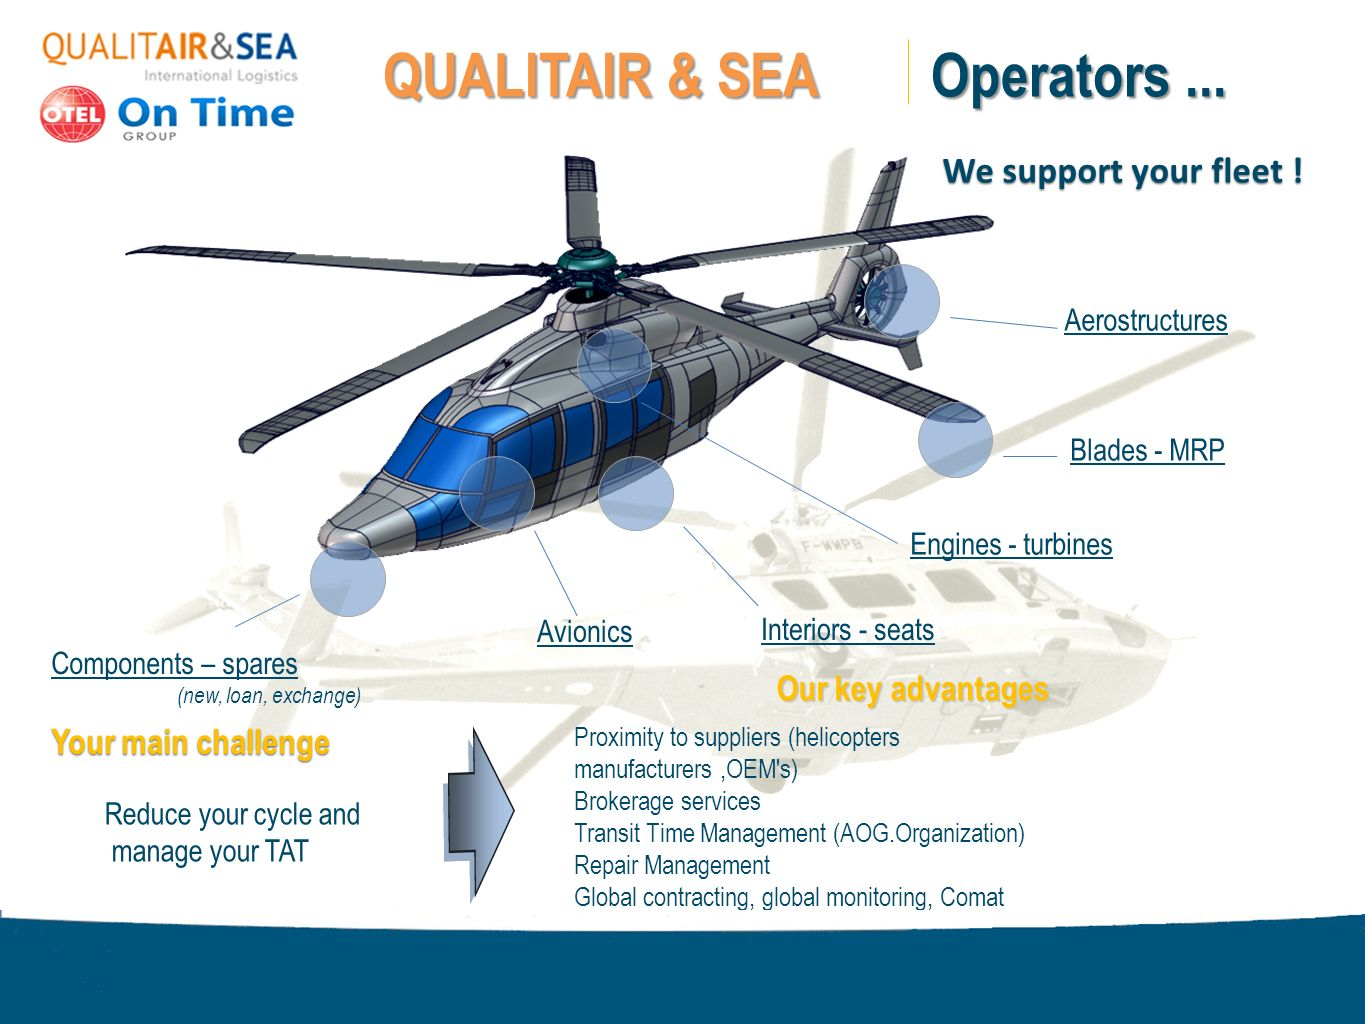 QUALITAIR & SEA Operators ...